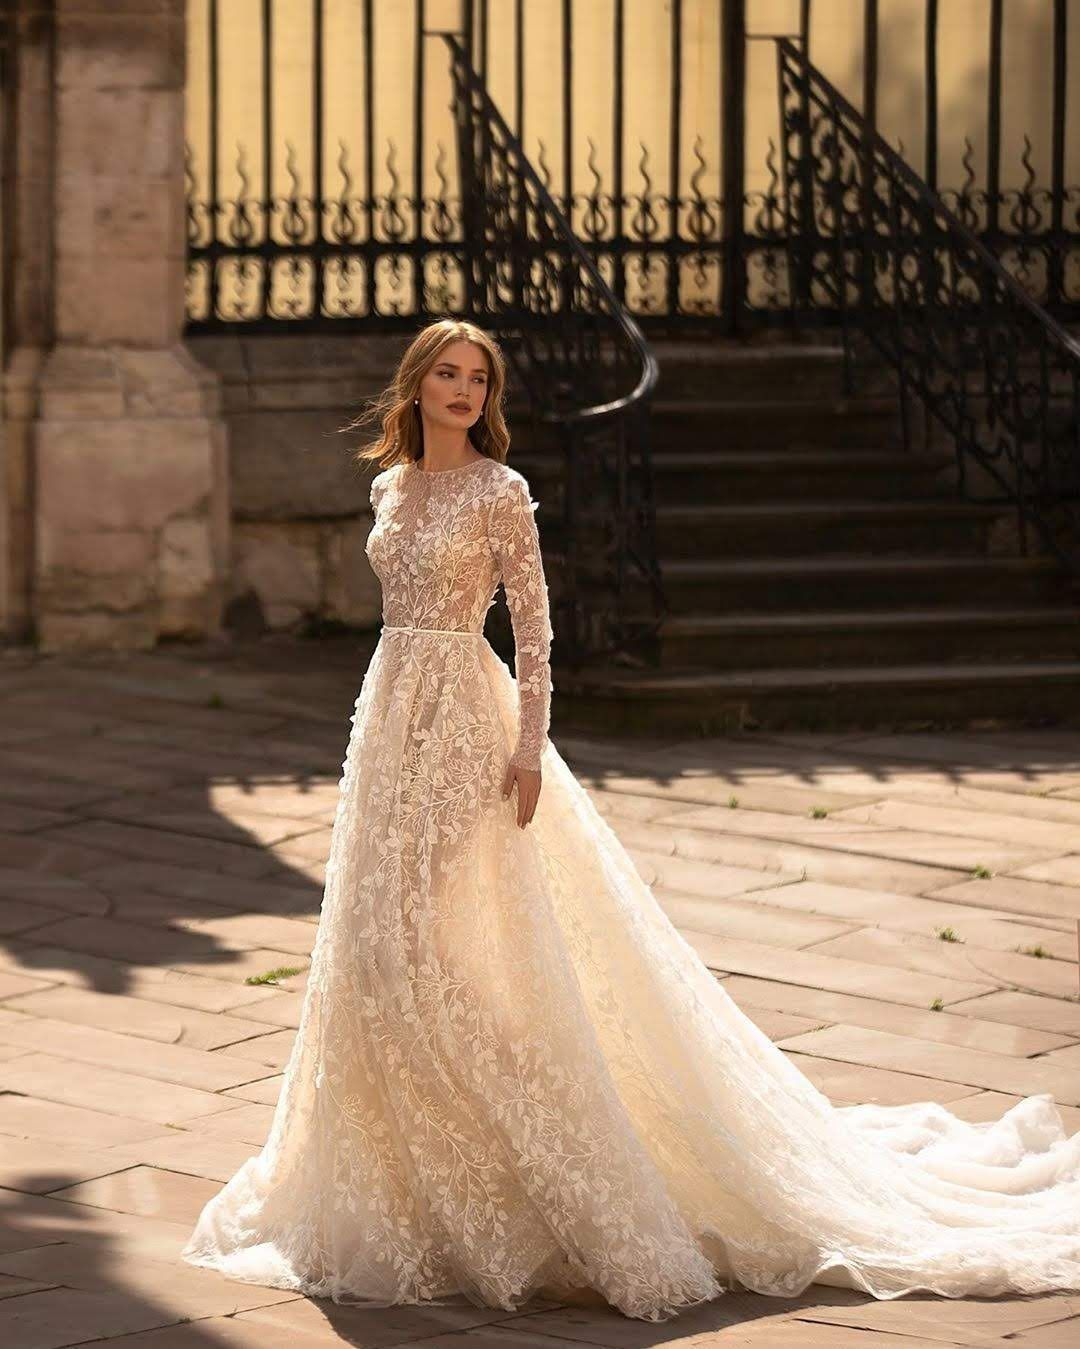 Romantic Wedding Dress With Long Sleeves Long Sleeve Wedding Dress Lace Lace Wedding Dress With Sleeves Long Wedding Dresses [ 1349 x 1080 Pixel ]